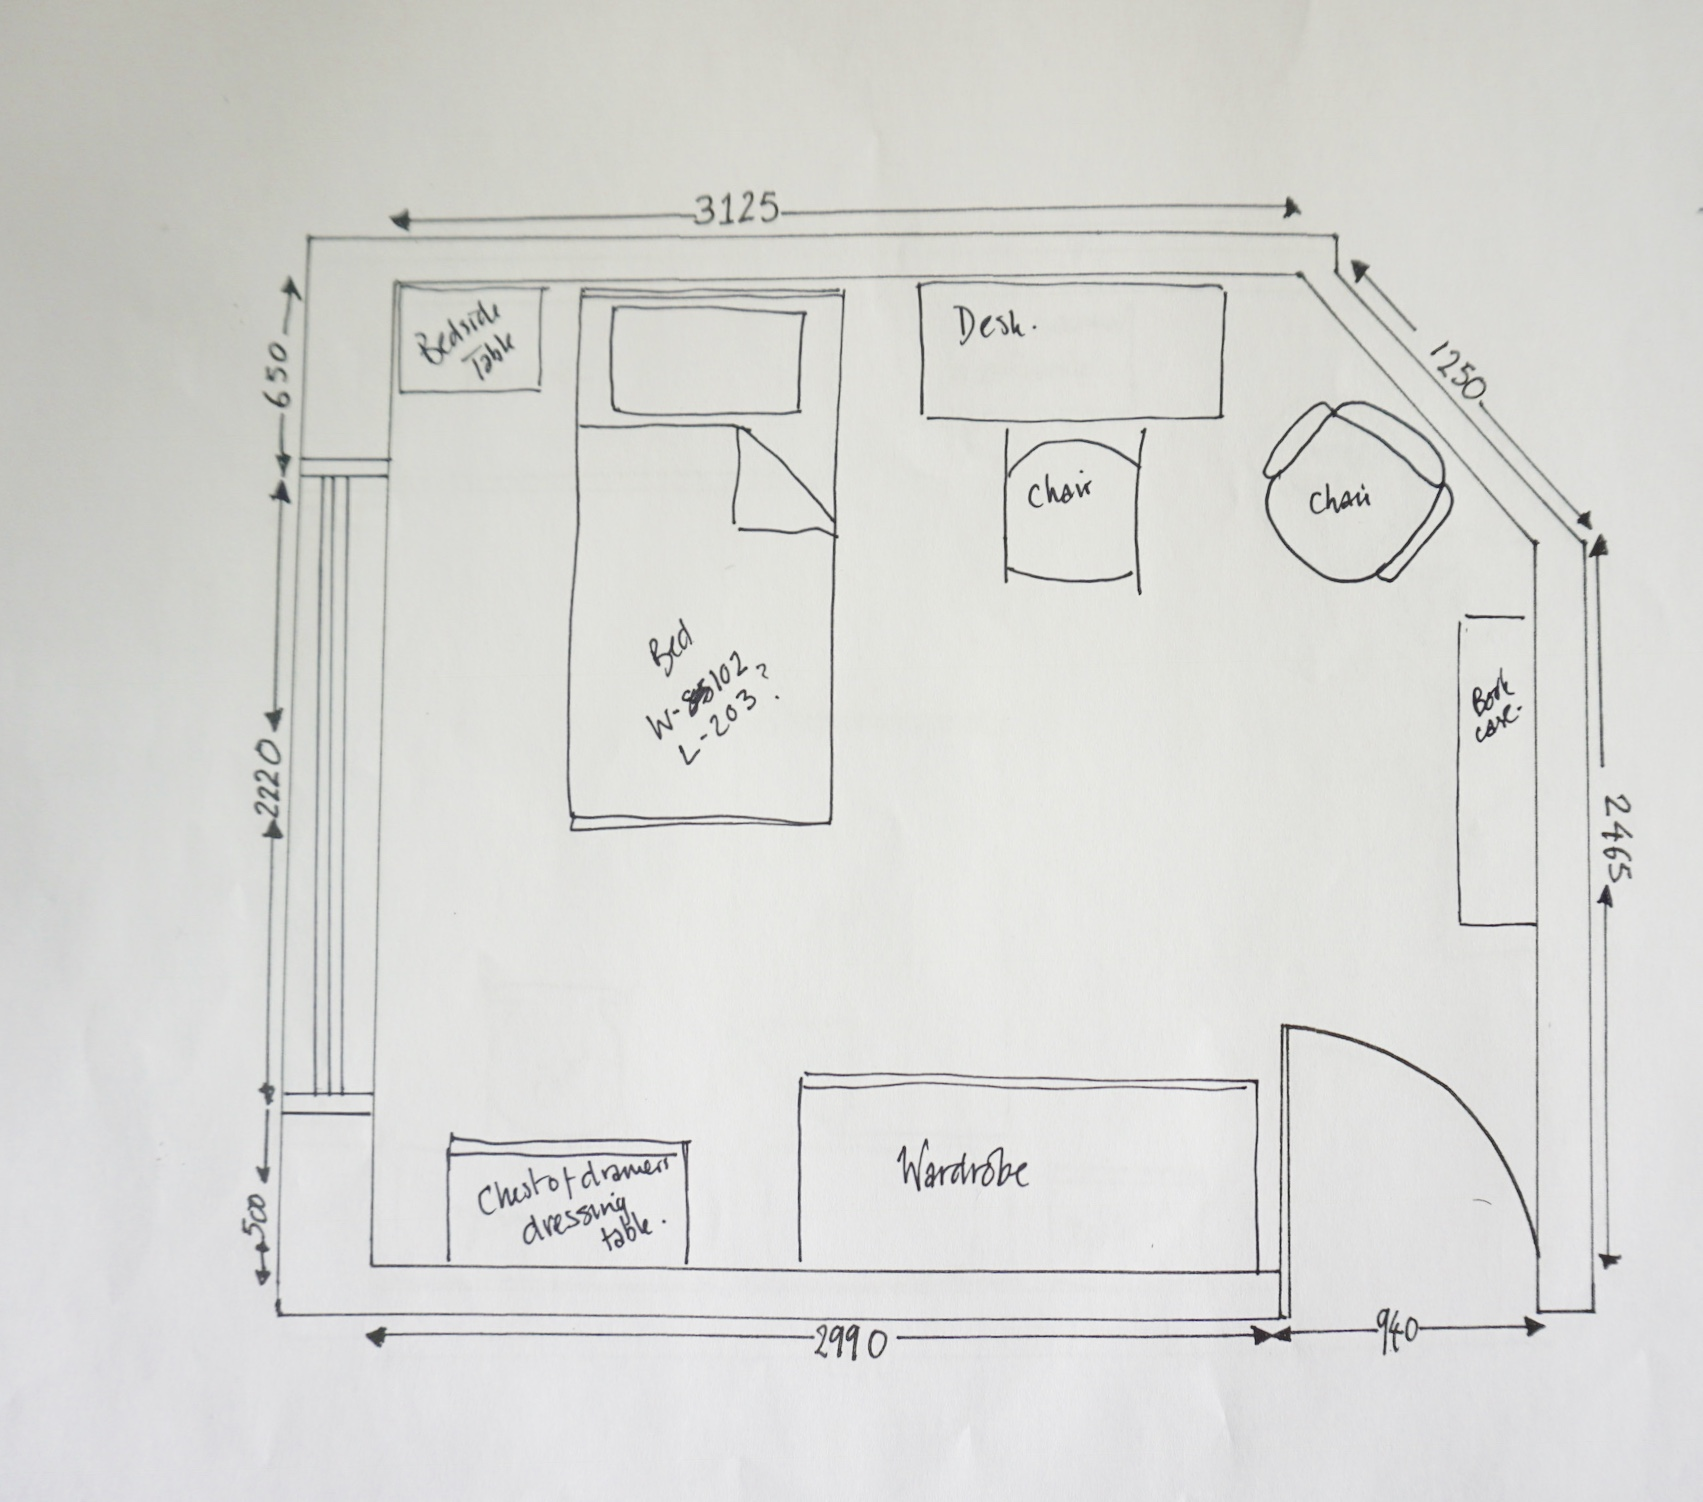 Rough Drawn Furniture Layout Using A Copy Of The Master Floor Plan.